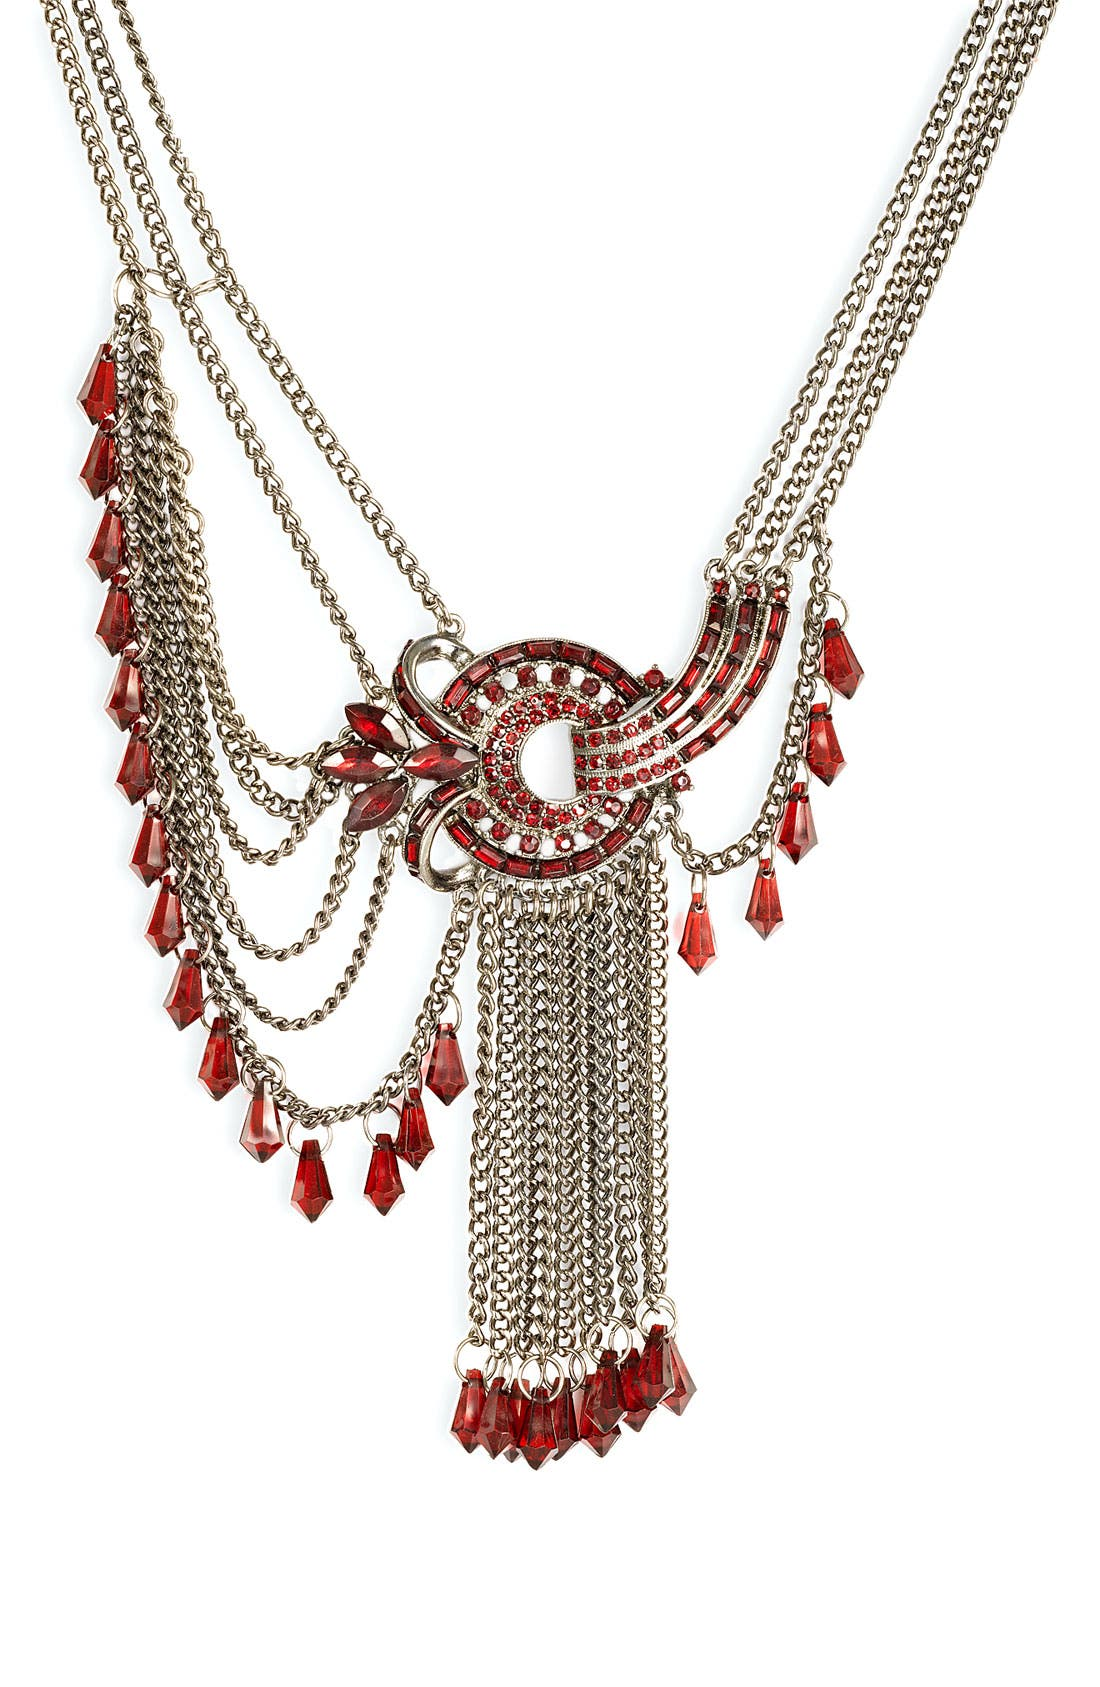 Main Image - Jewelry Fashions Multi Chain Statement Necklace